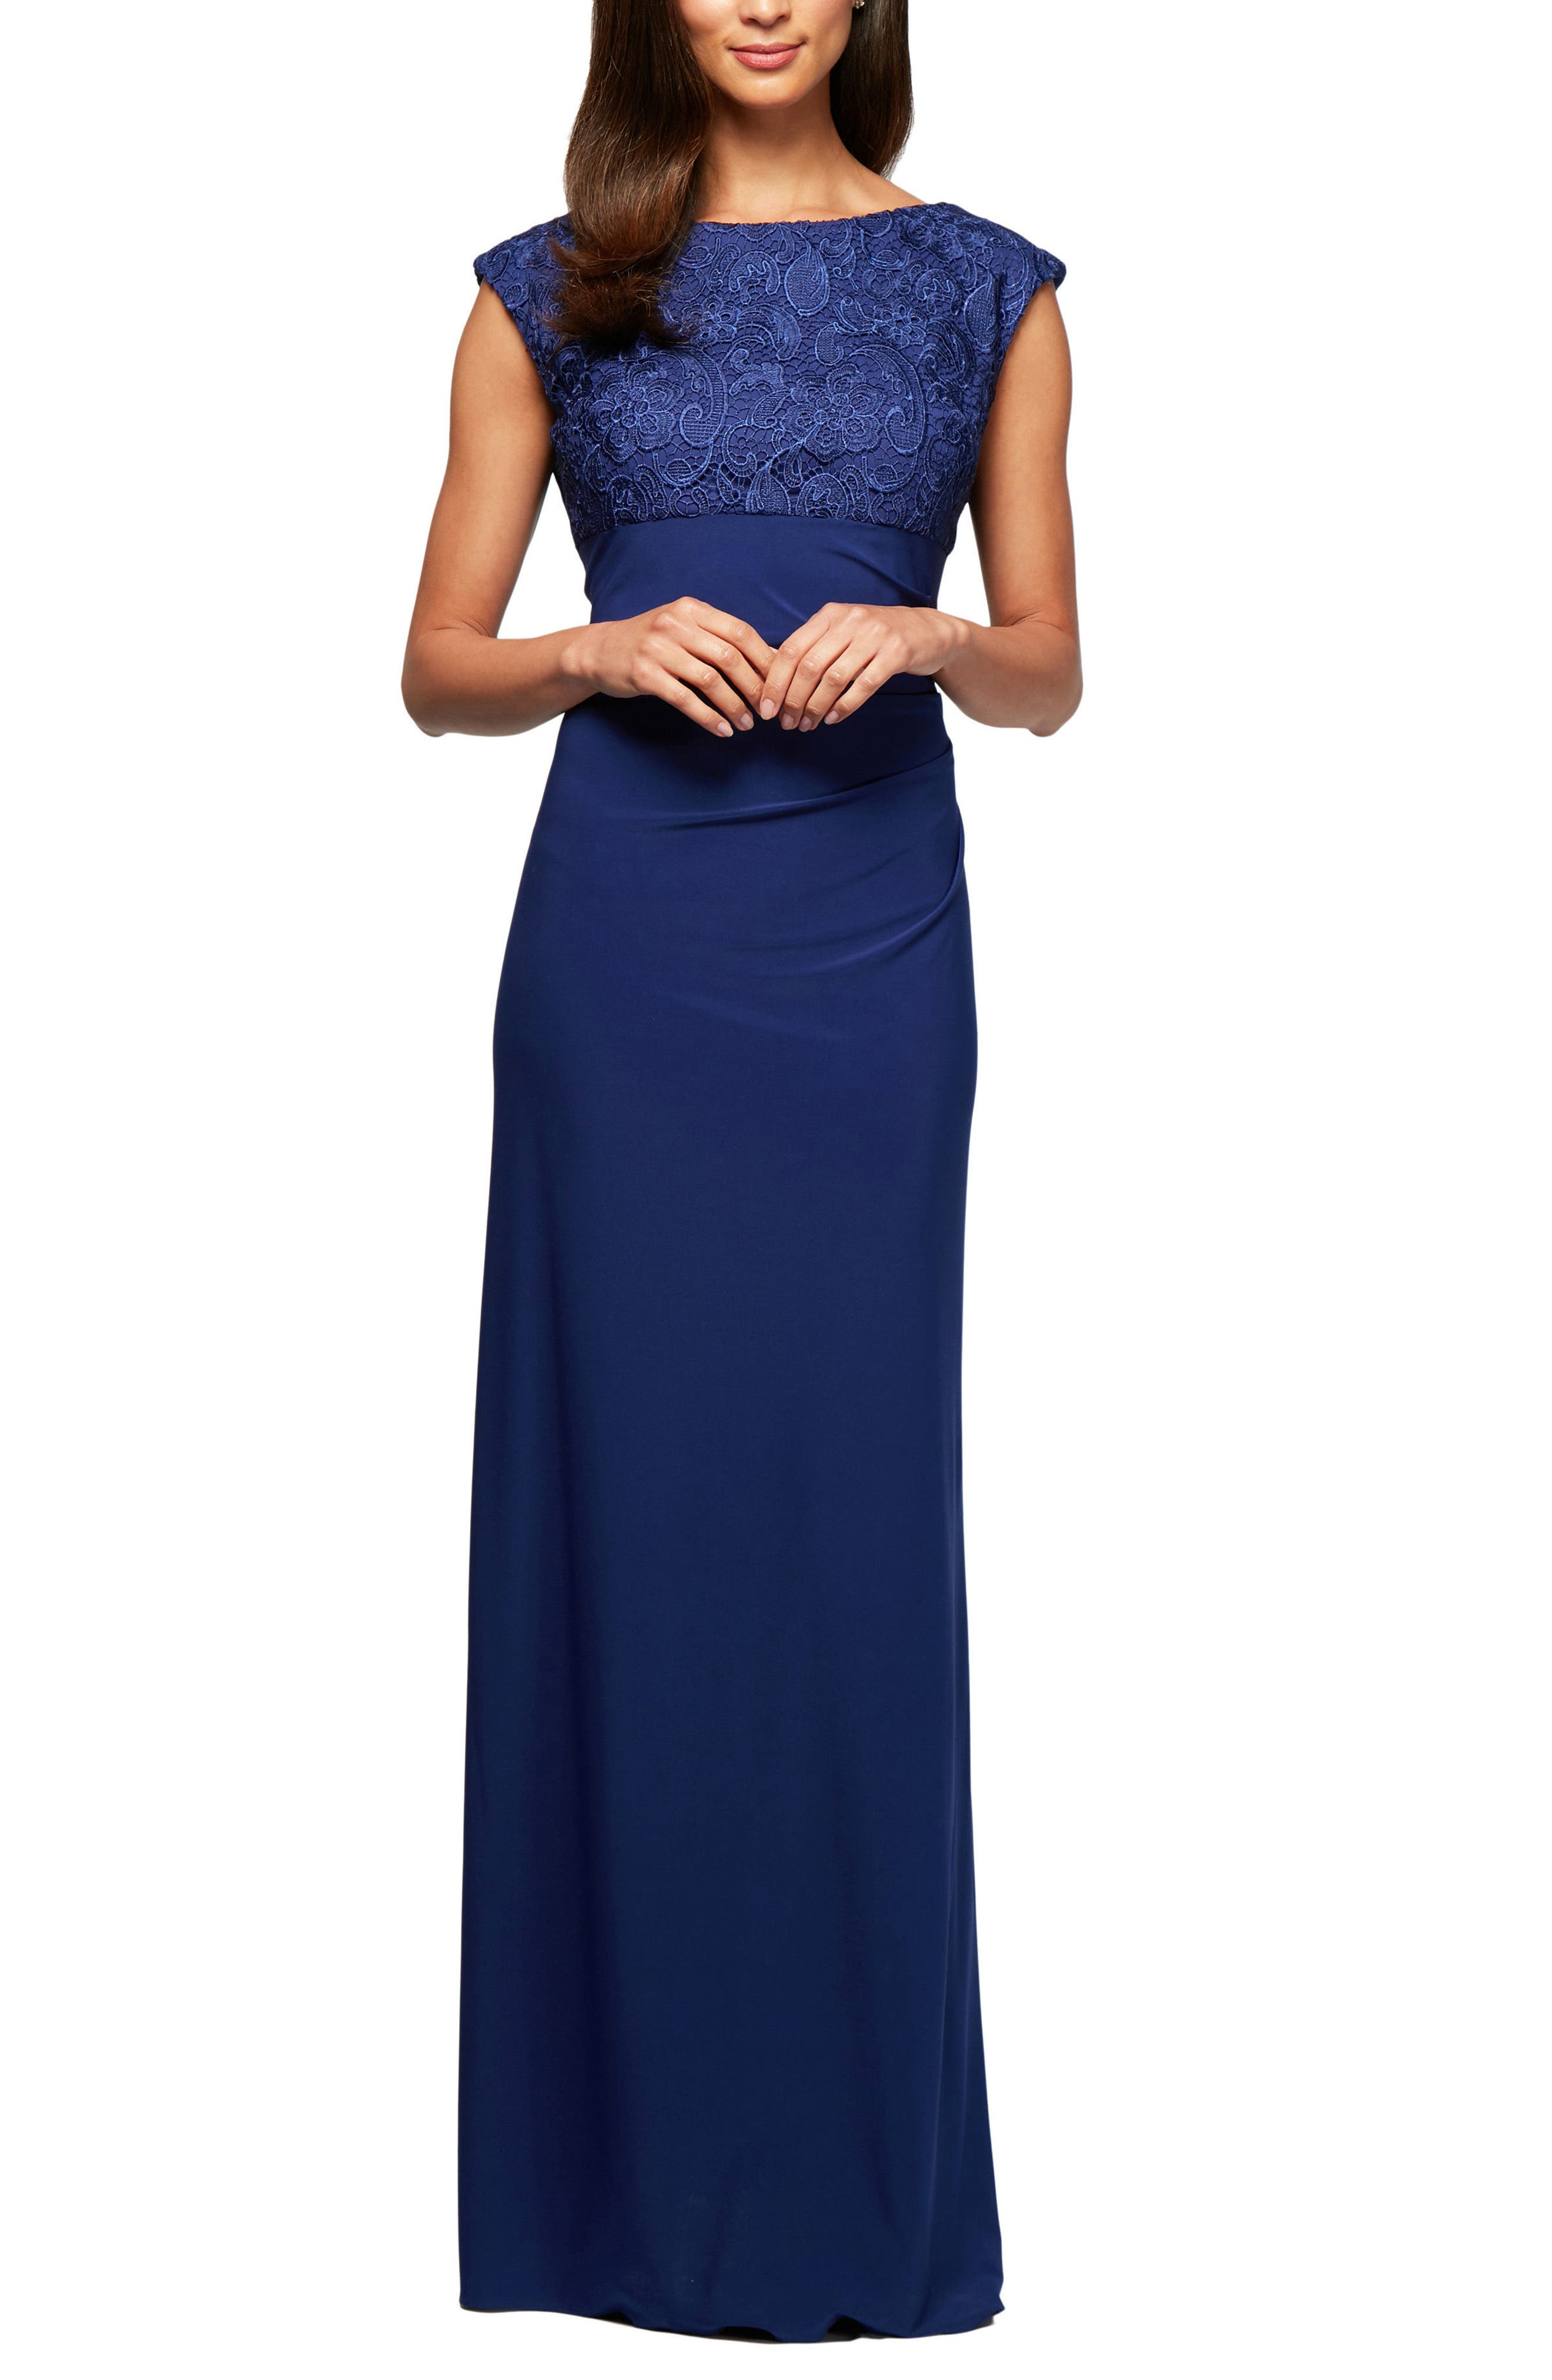 Ruched Gown,                             Main thumbnail 1, color,                             461